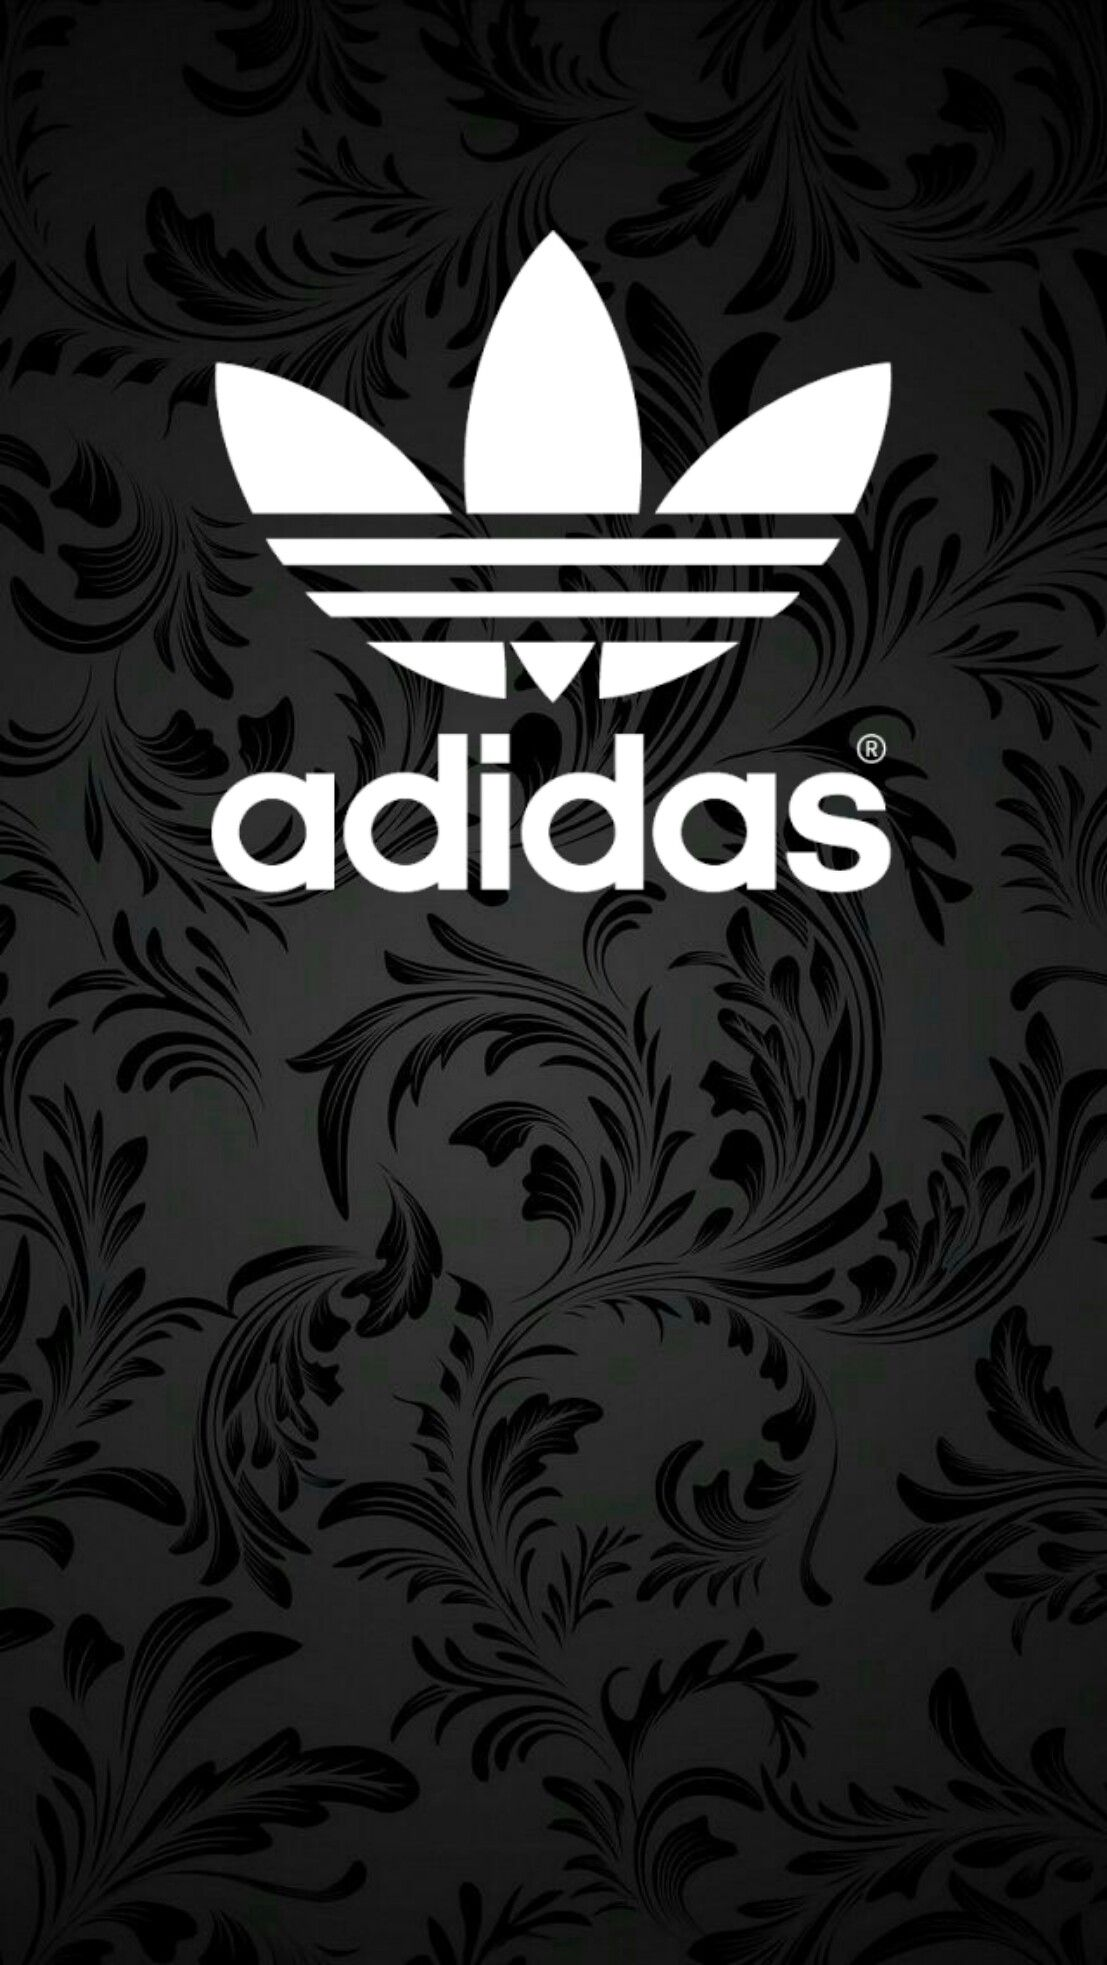 adidas black wallpaper android iphone